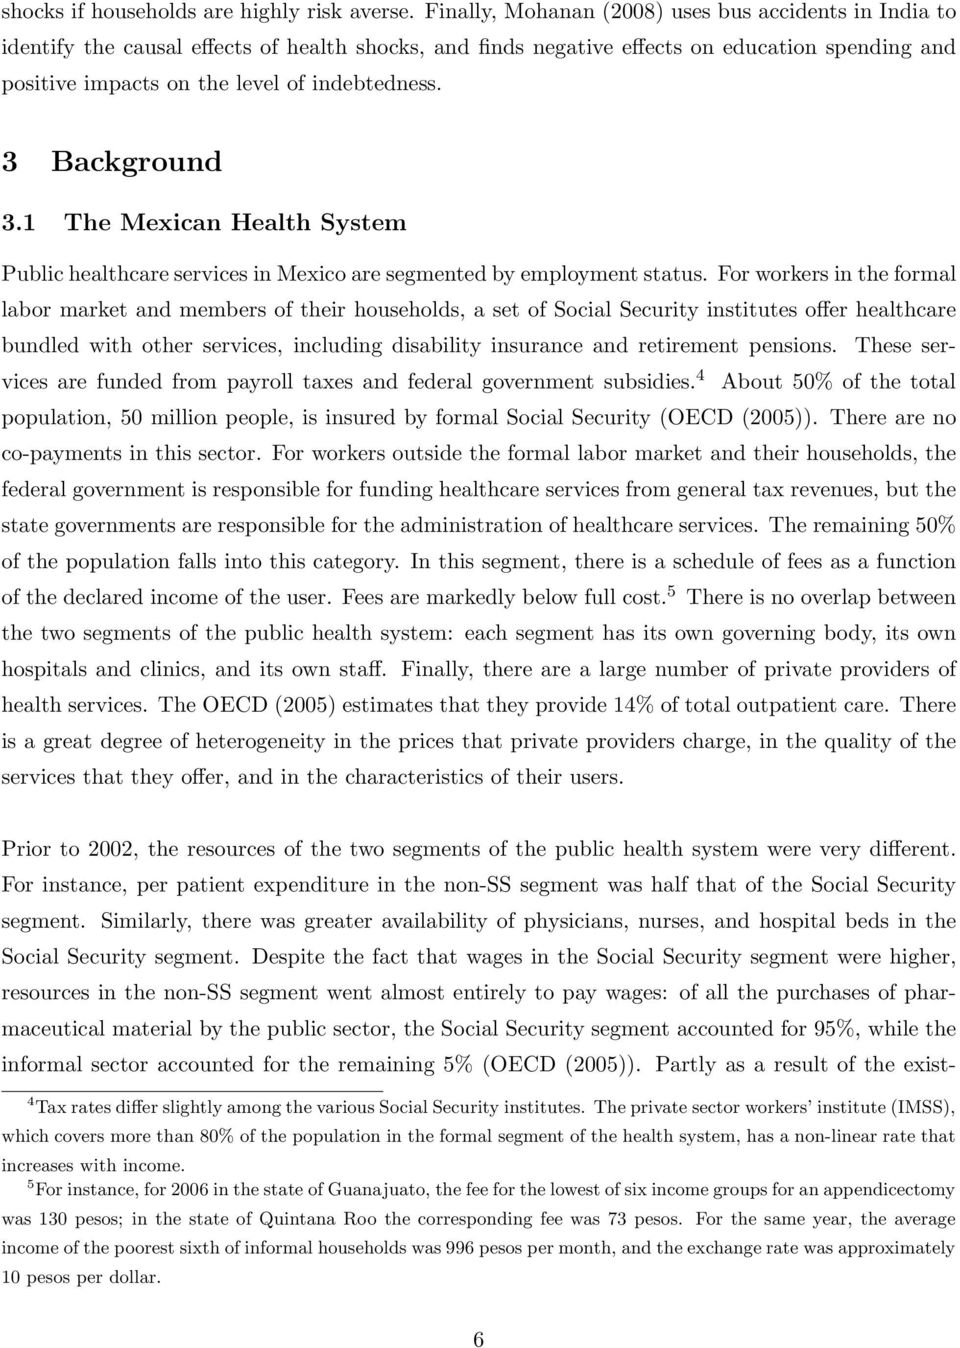 3 Background 3.1 The Mexican Health System Public healthcare services in Mexico are segmented by employment status.